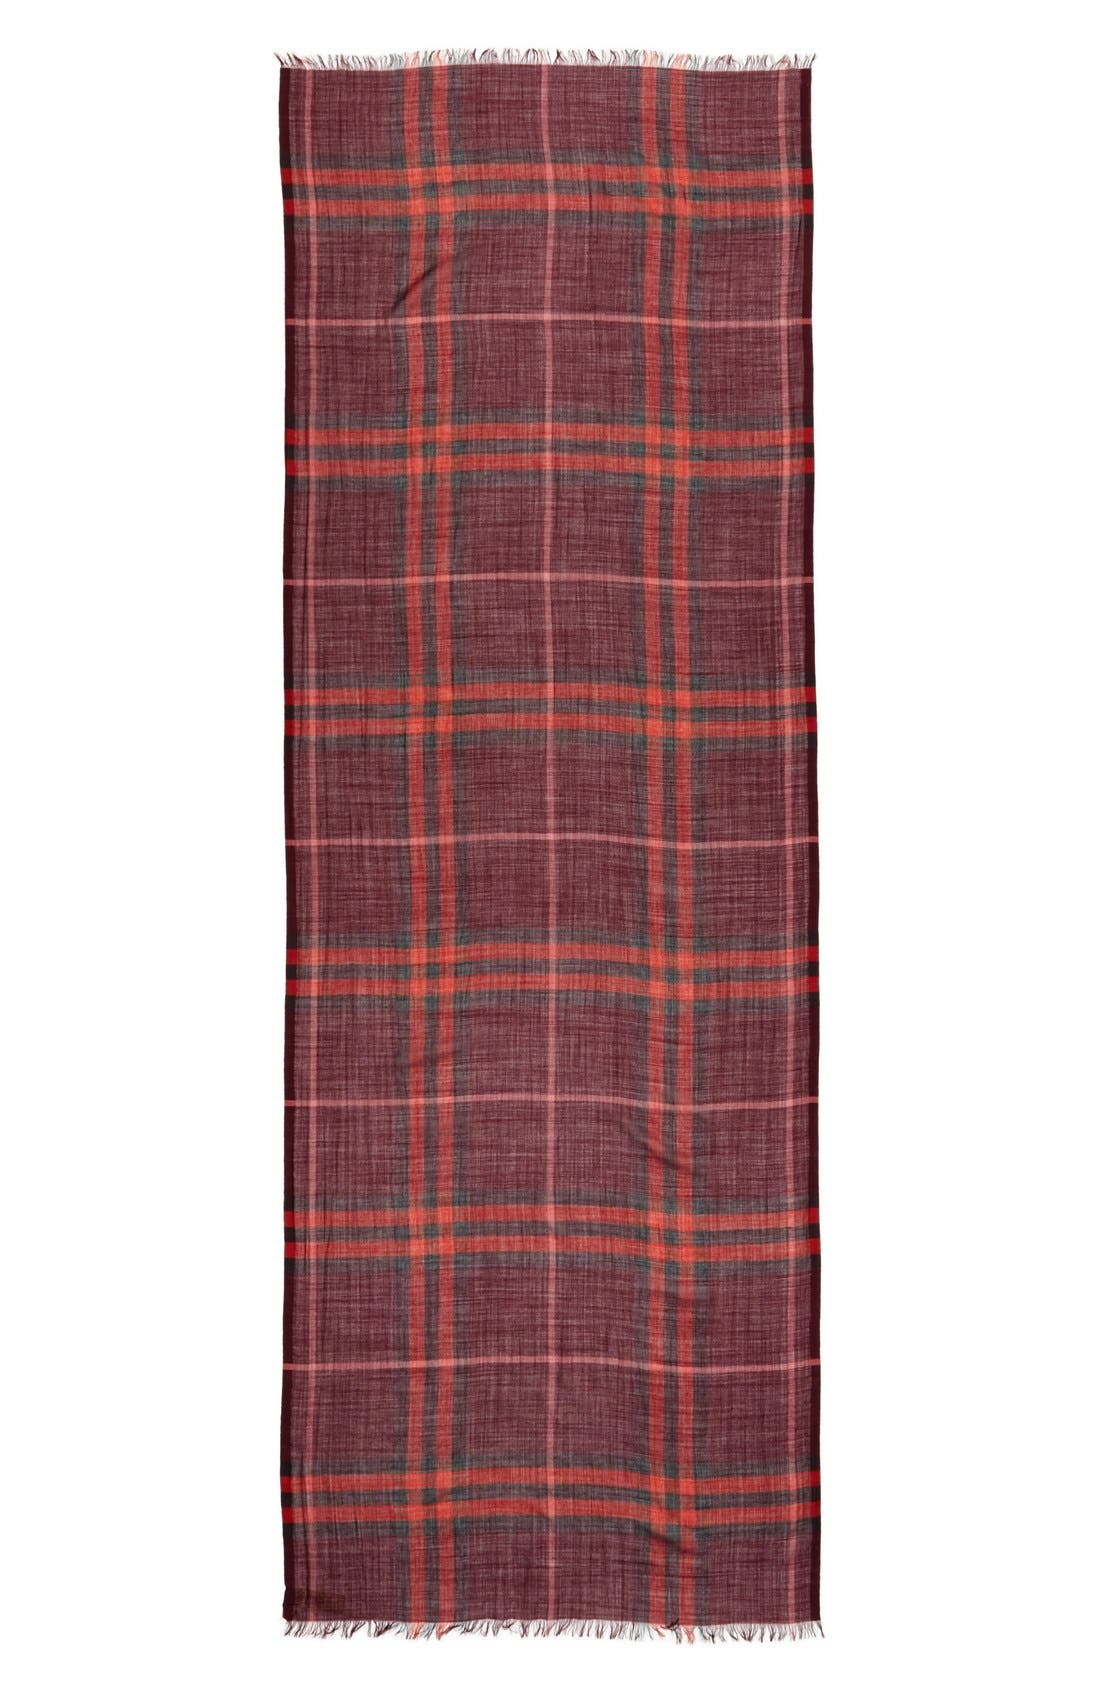 Giant Check Print Wool & Silk Scarf,                             Alternate thumbnail 108, color,